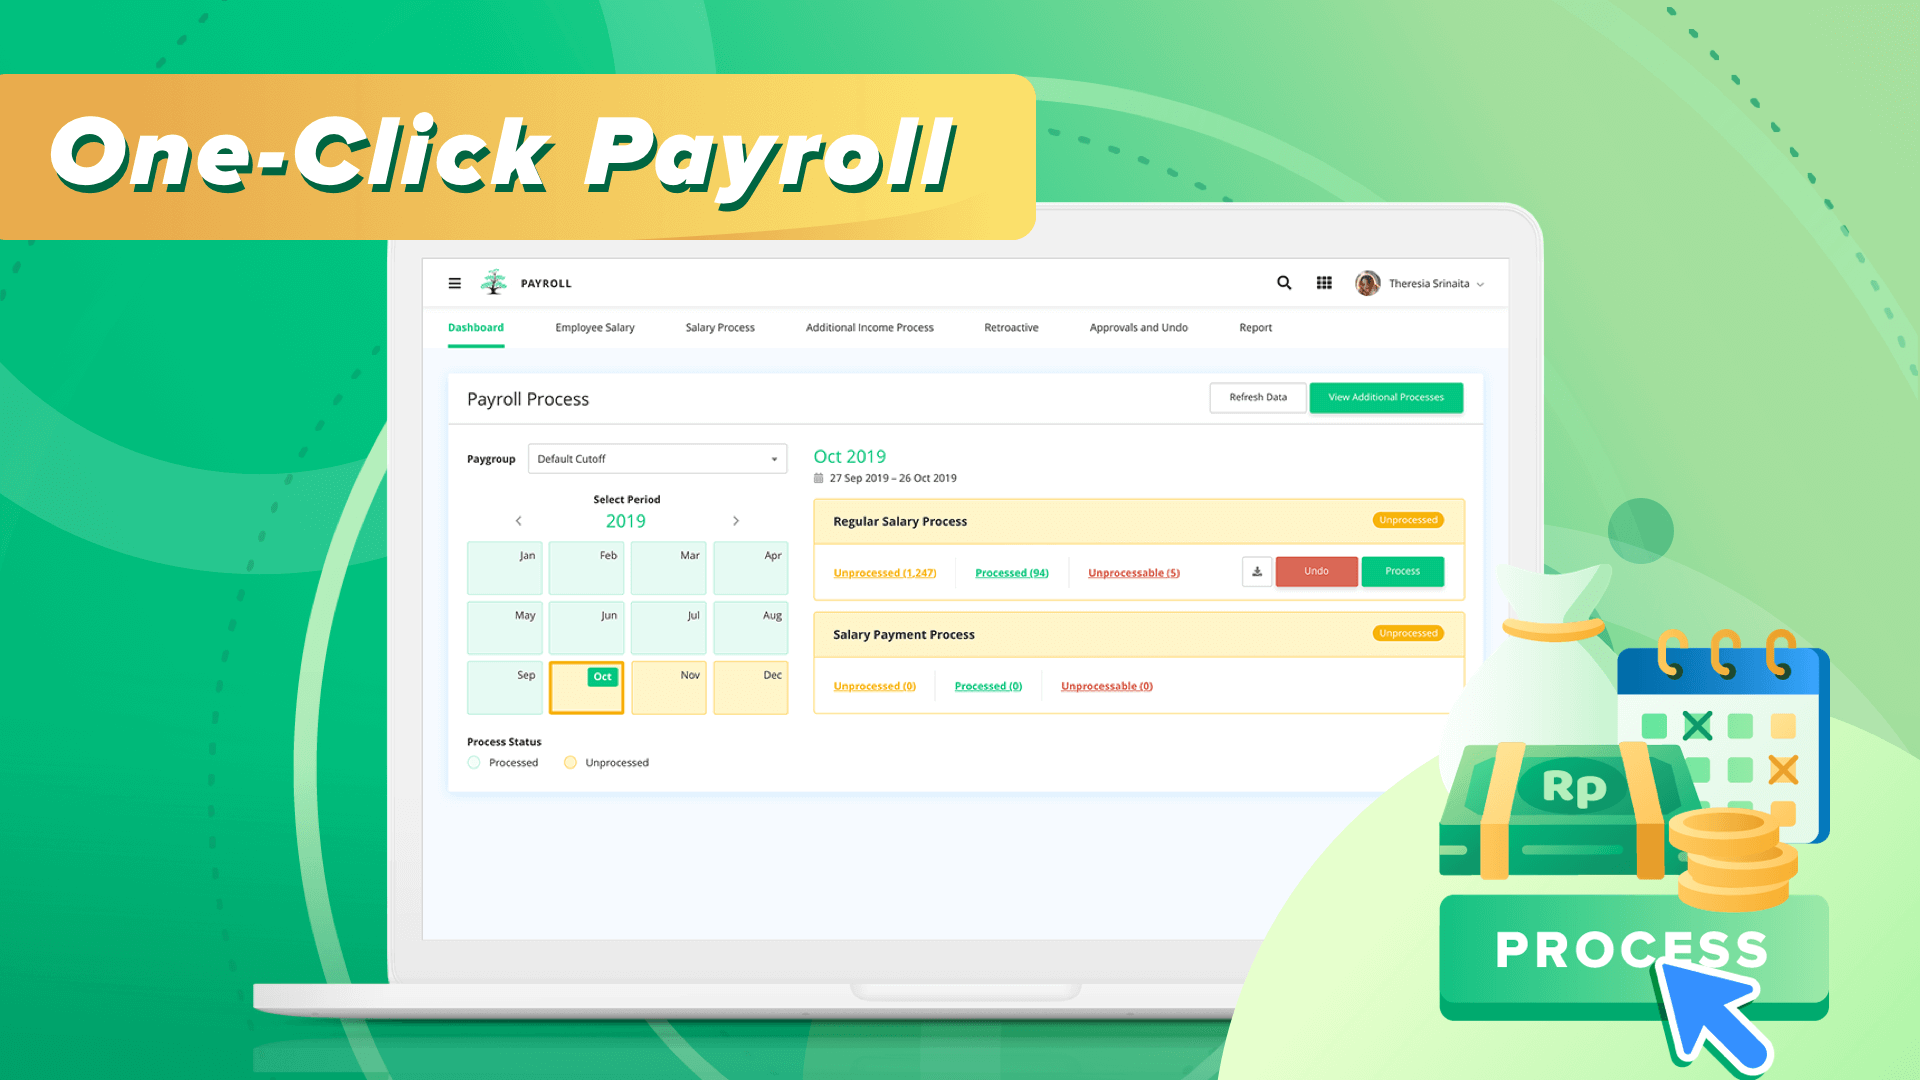 One-Click Payroll